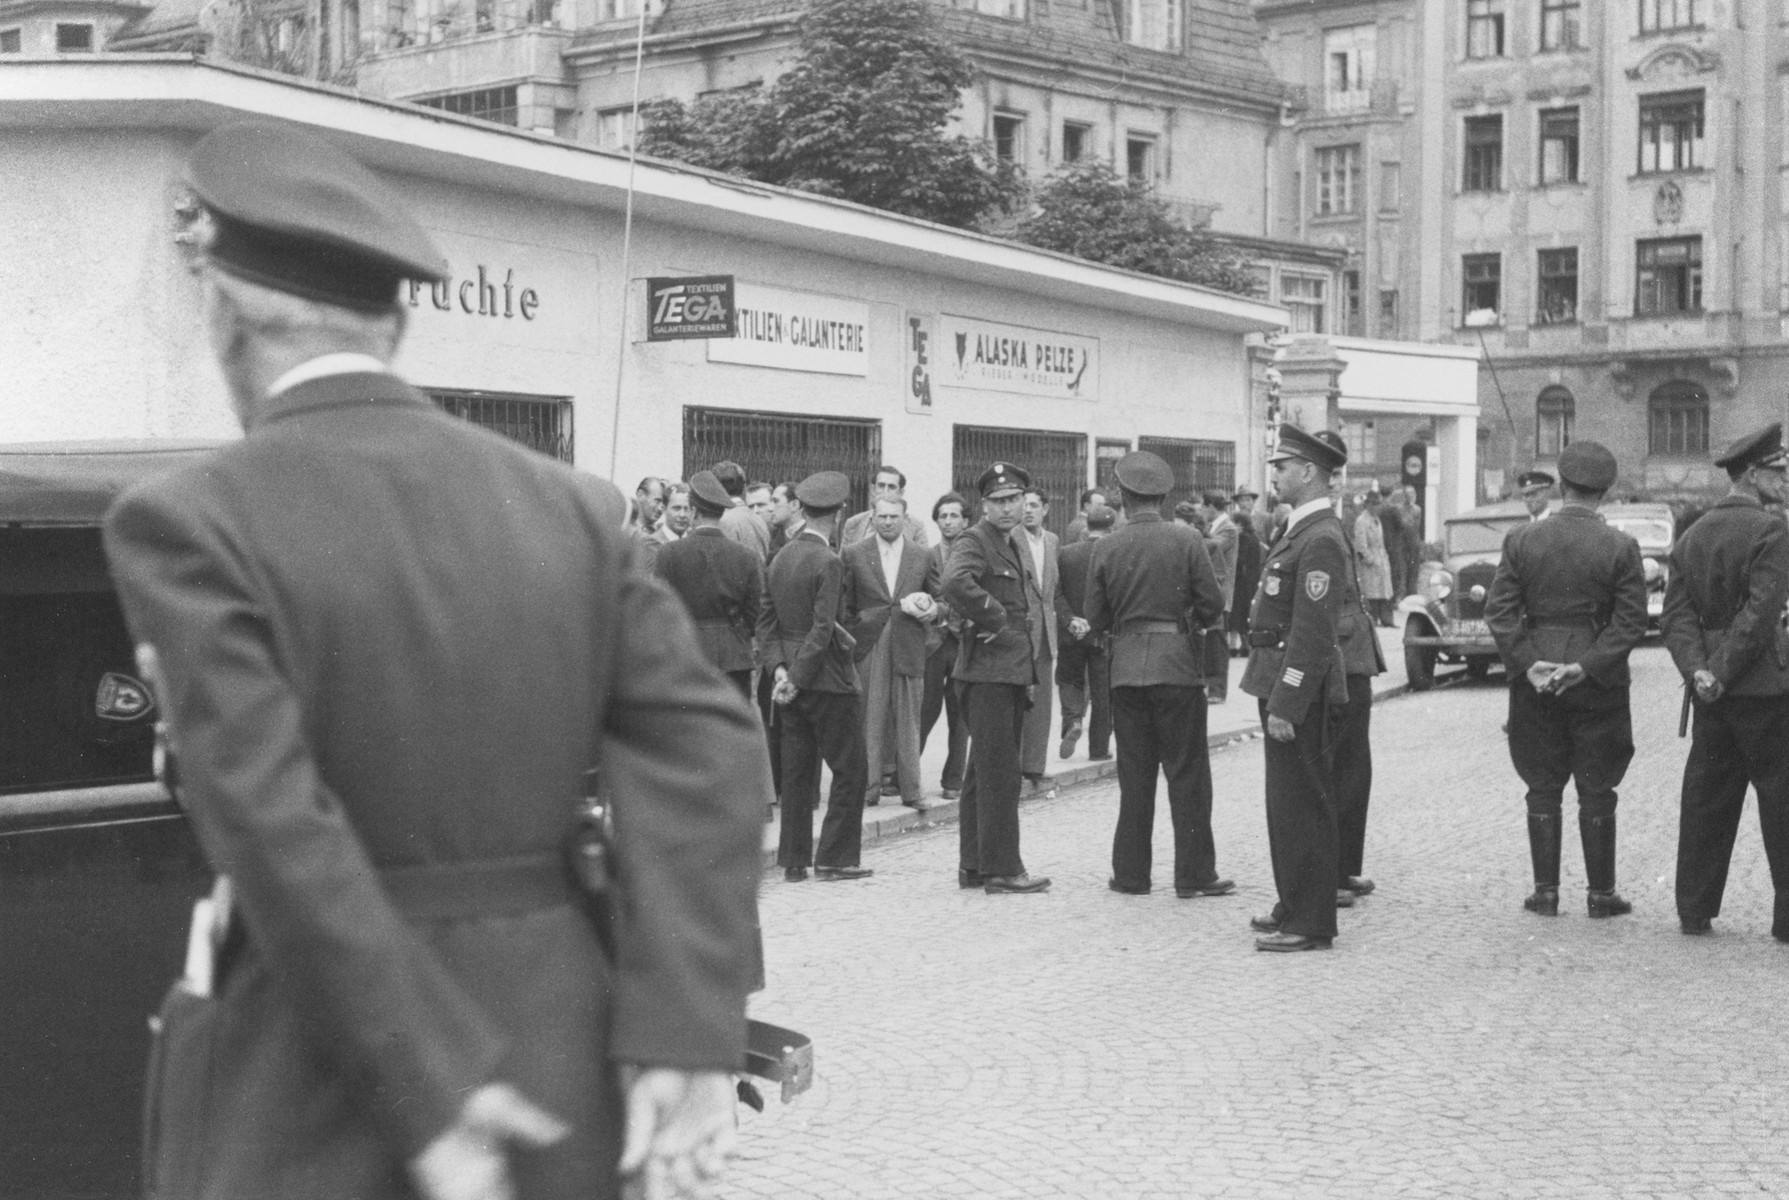 German police block off a commercial street in Munich after a raid on Jewish black-market activities resulted in a counter-demonstration by Jewish shopkeepers who closed their stores.